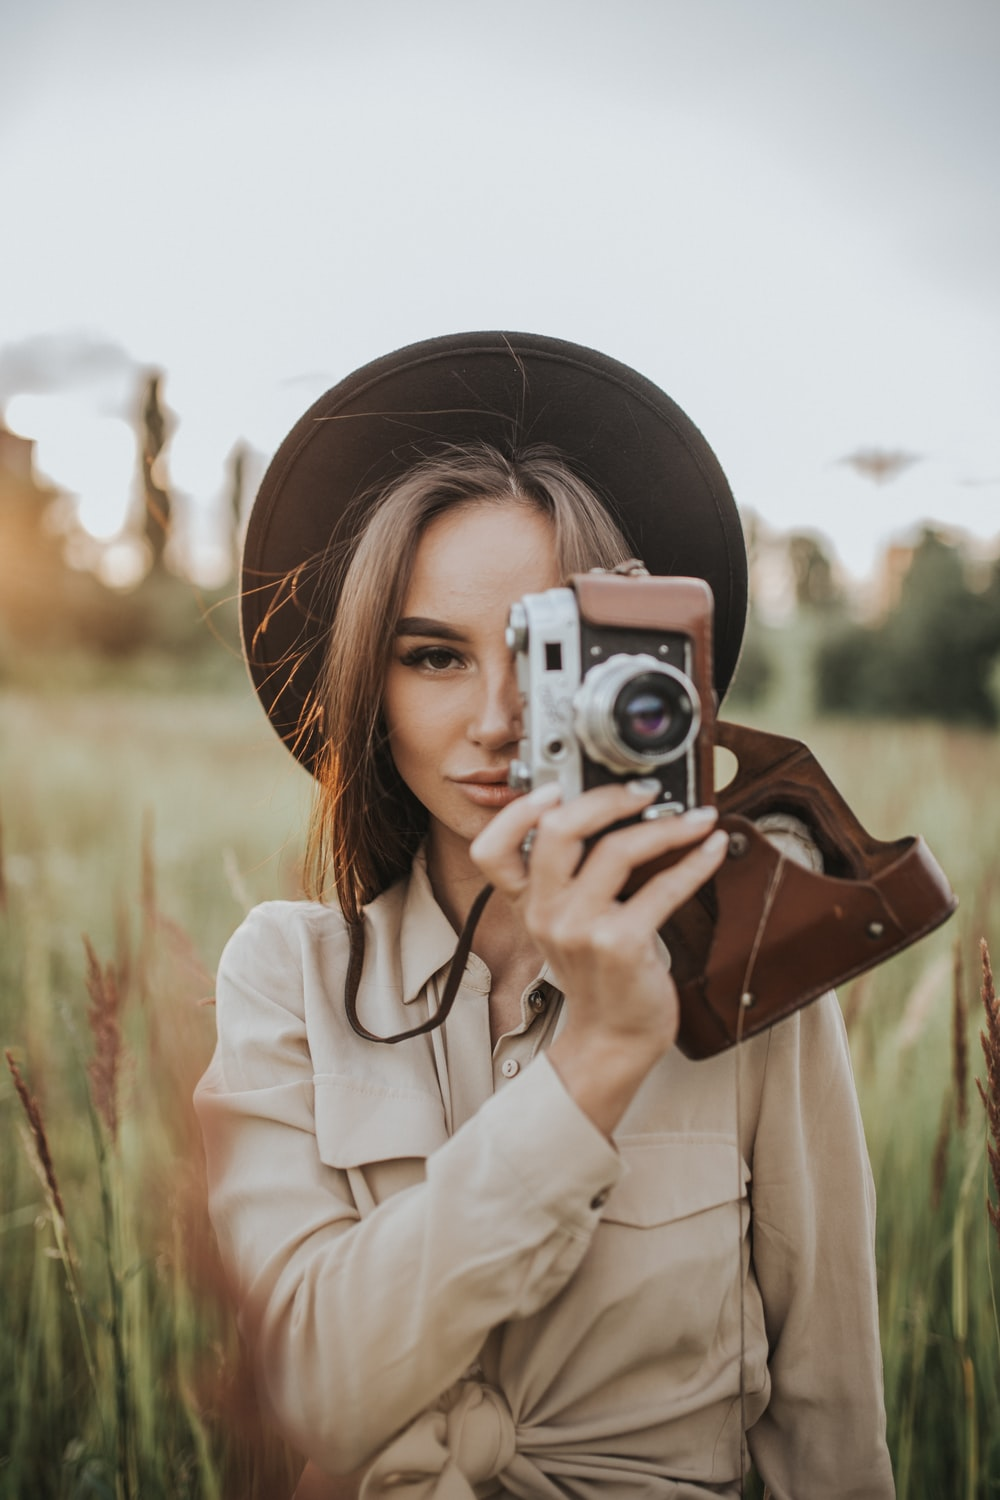 woman holding camera in field during daytime